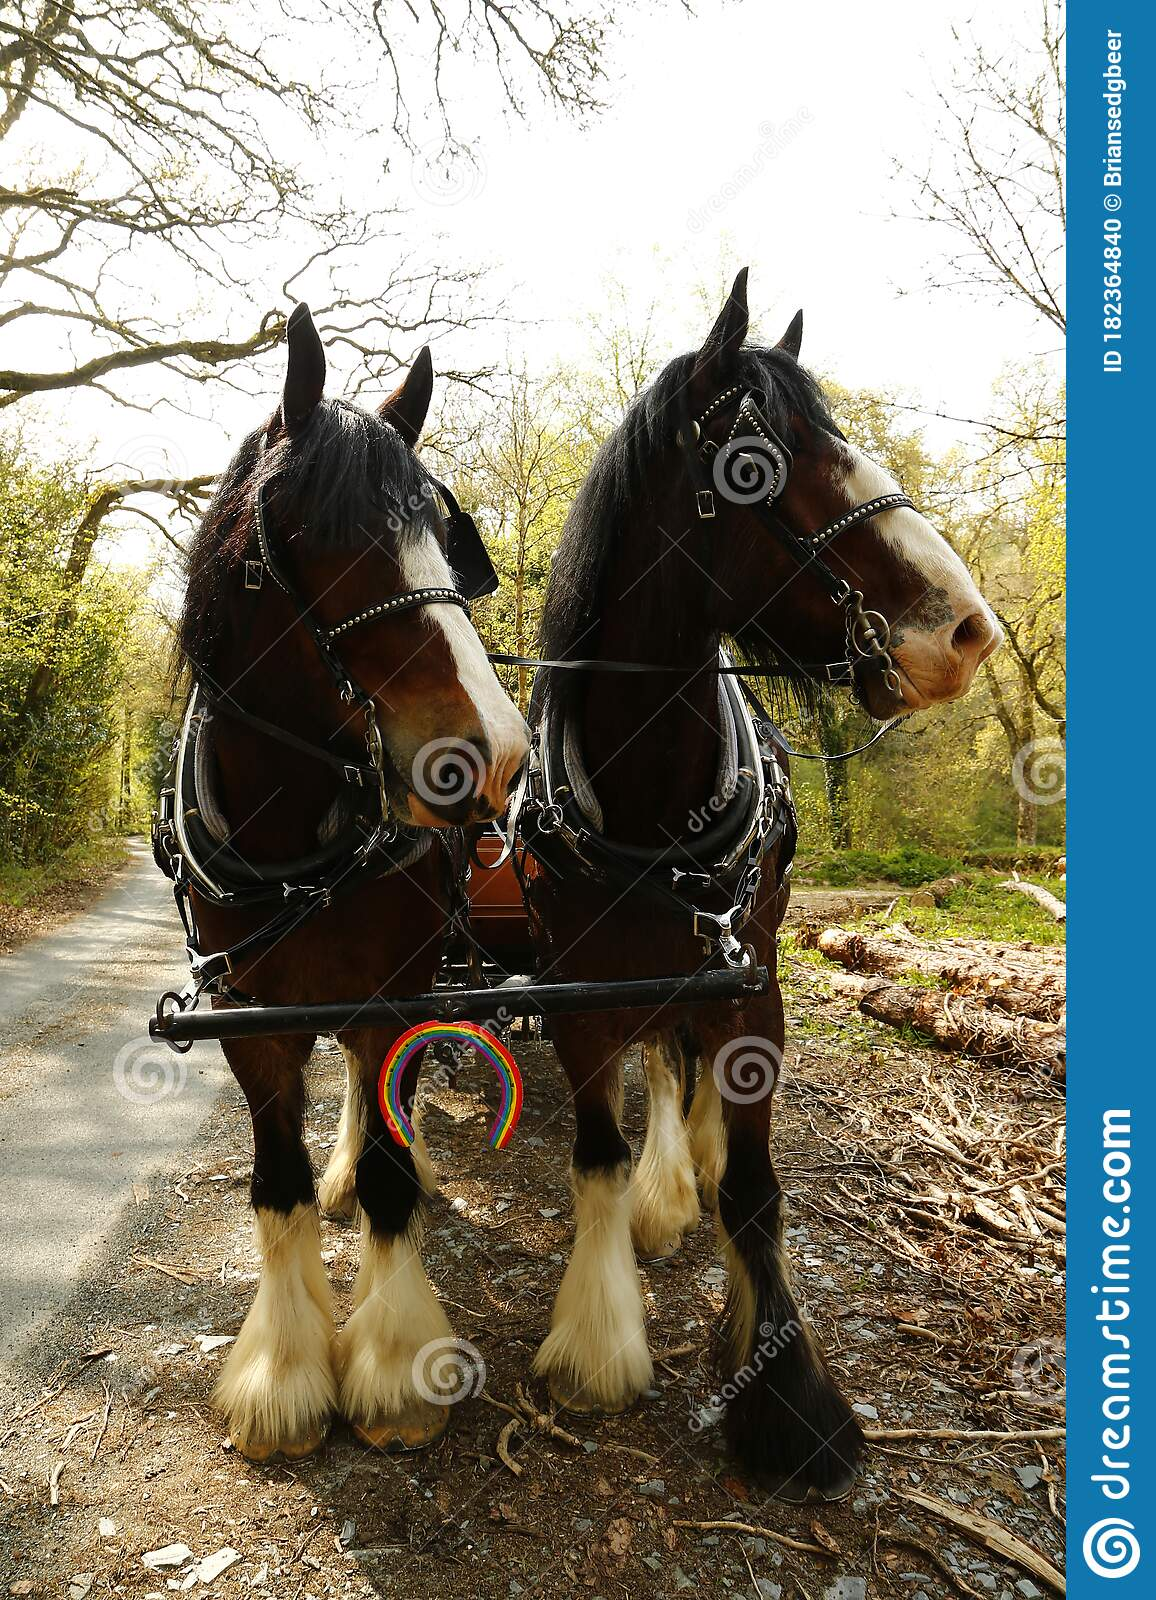 Pair Of Shire Horses Harnessed Together With The Nhs Rainbow Colours On A Horse Shoe Attached To Their Harness Stock Photo Image Of Quarter Beautiful 182364840